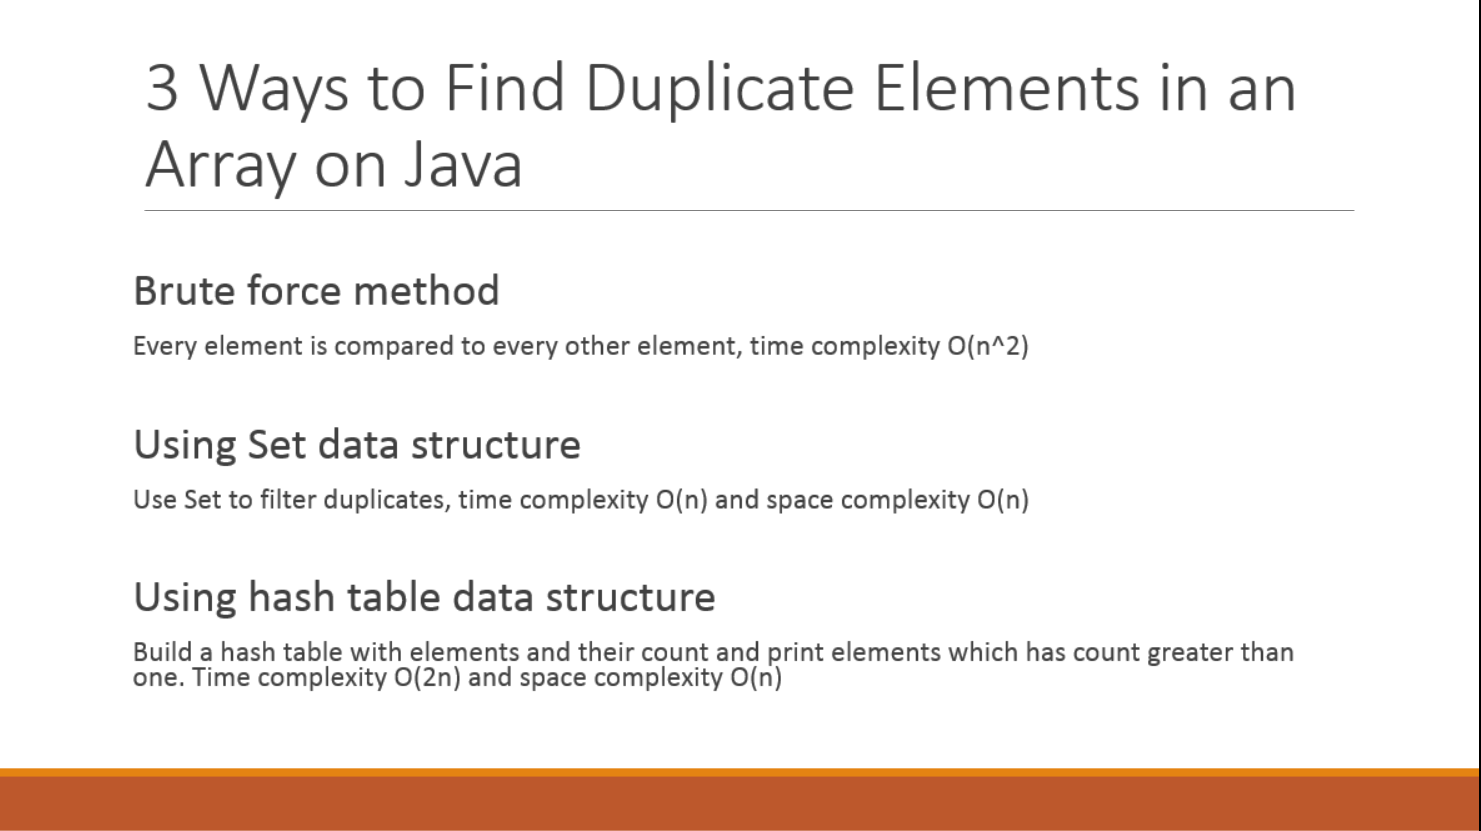 3 Ways to Find Duplicate Elements in an Array - Java